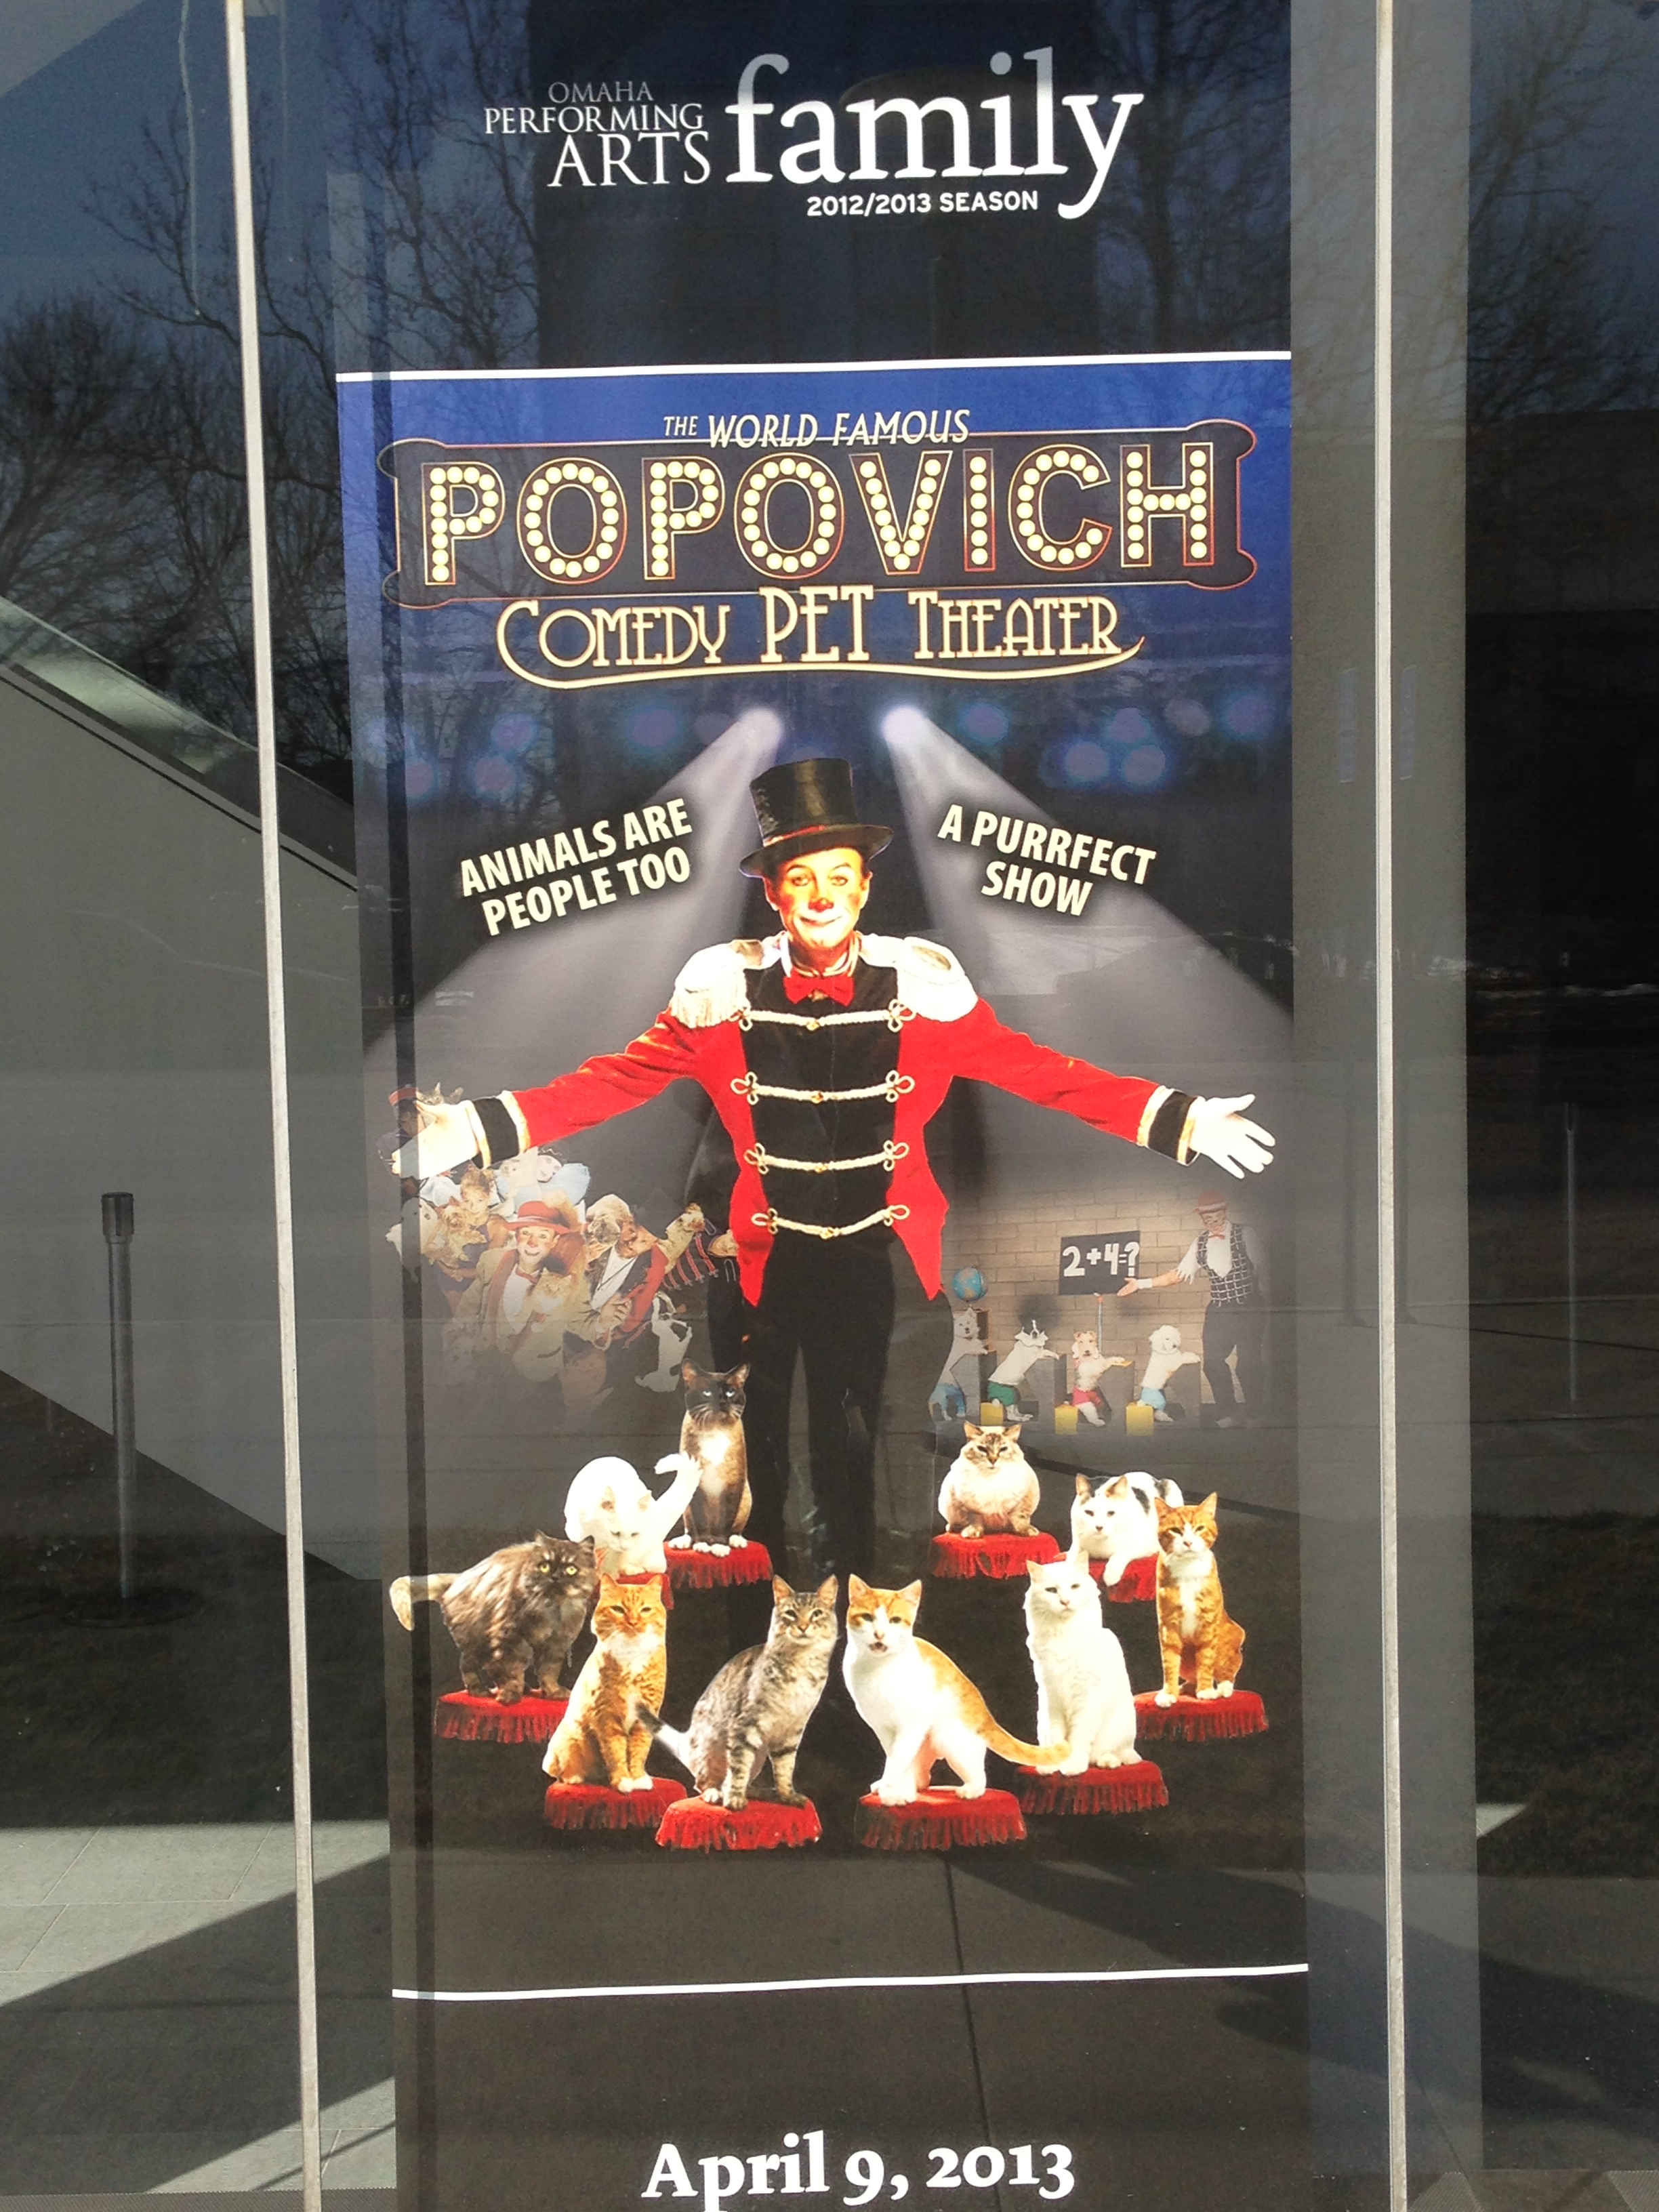 Popovitch Comedy Pet Theater